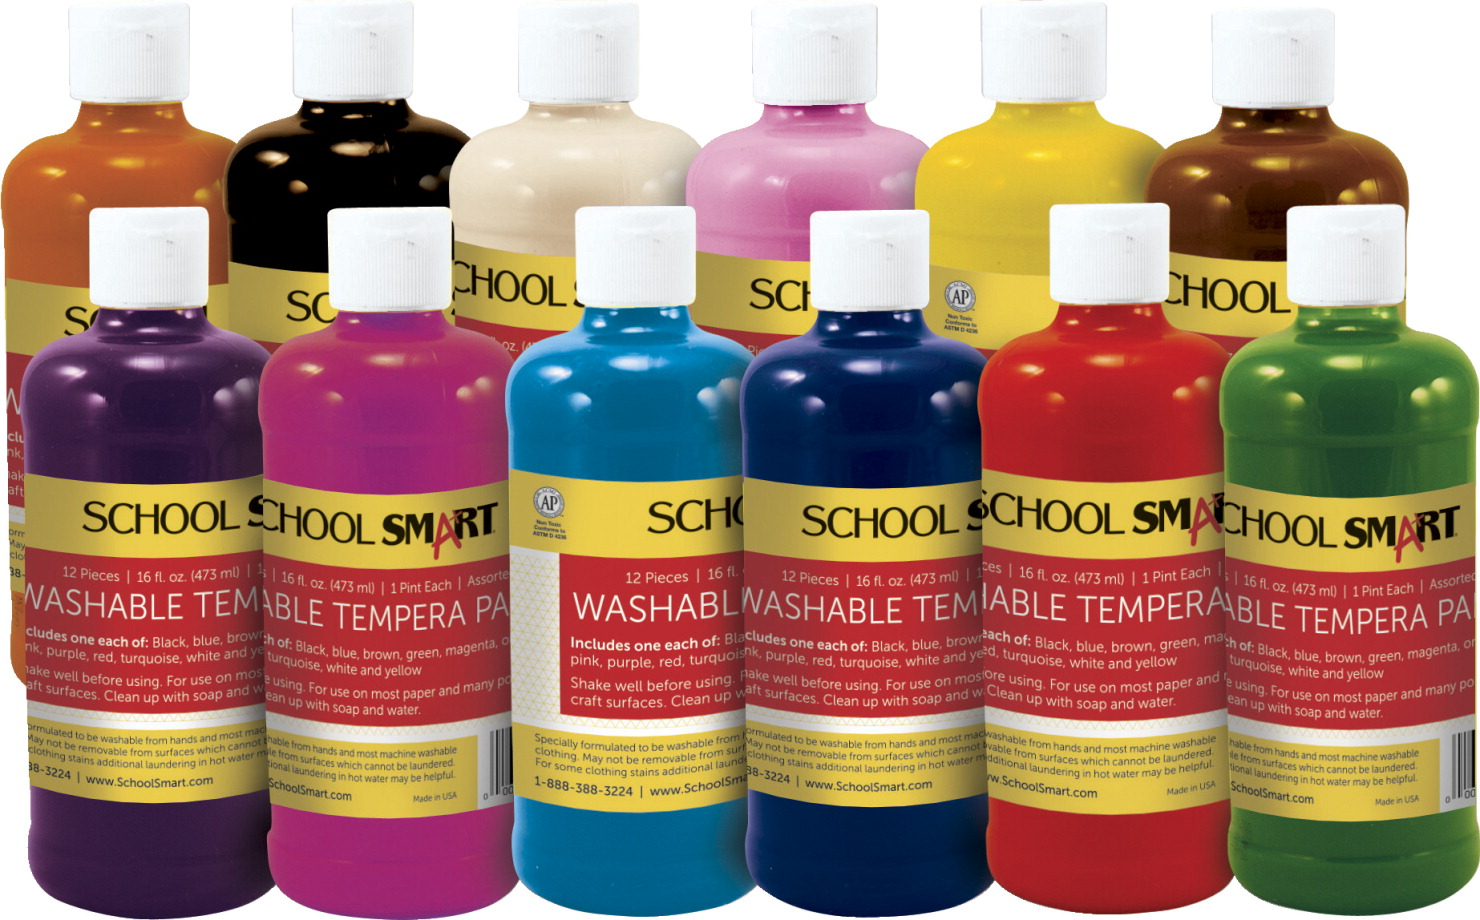 School Smart Washable Tempera Paint, 1 Pint, Assorted Colors, Set of 12